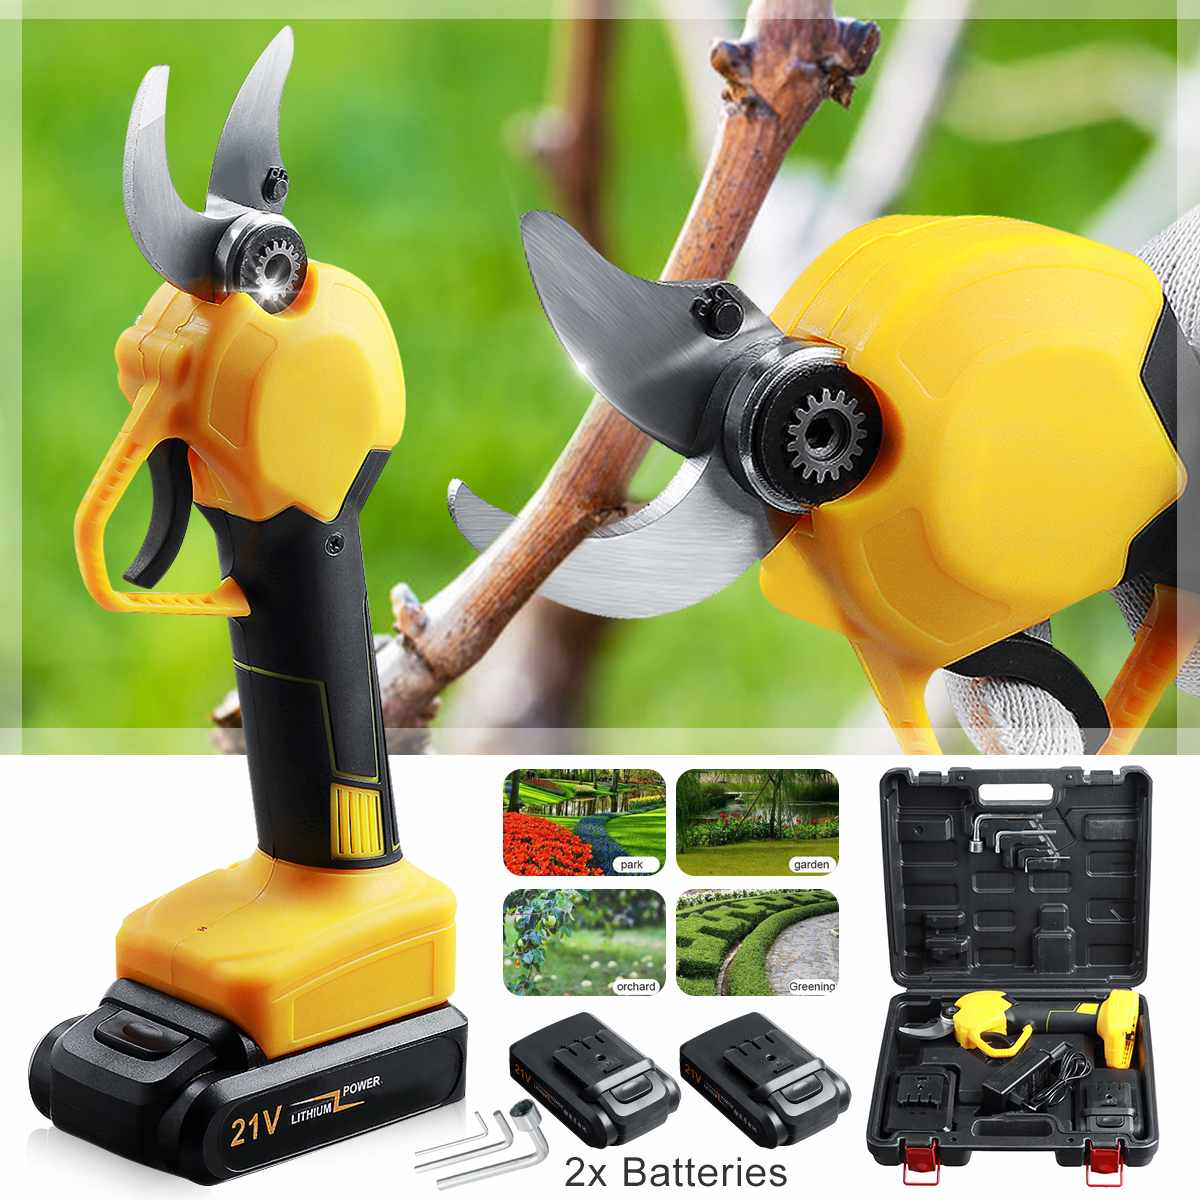 Brushless Electric Pruning Shears 30mm Rechargeable Pruner Trimmer Power Cutting Fruit Tree Bonsai Garden Scissors with Battery